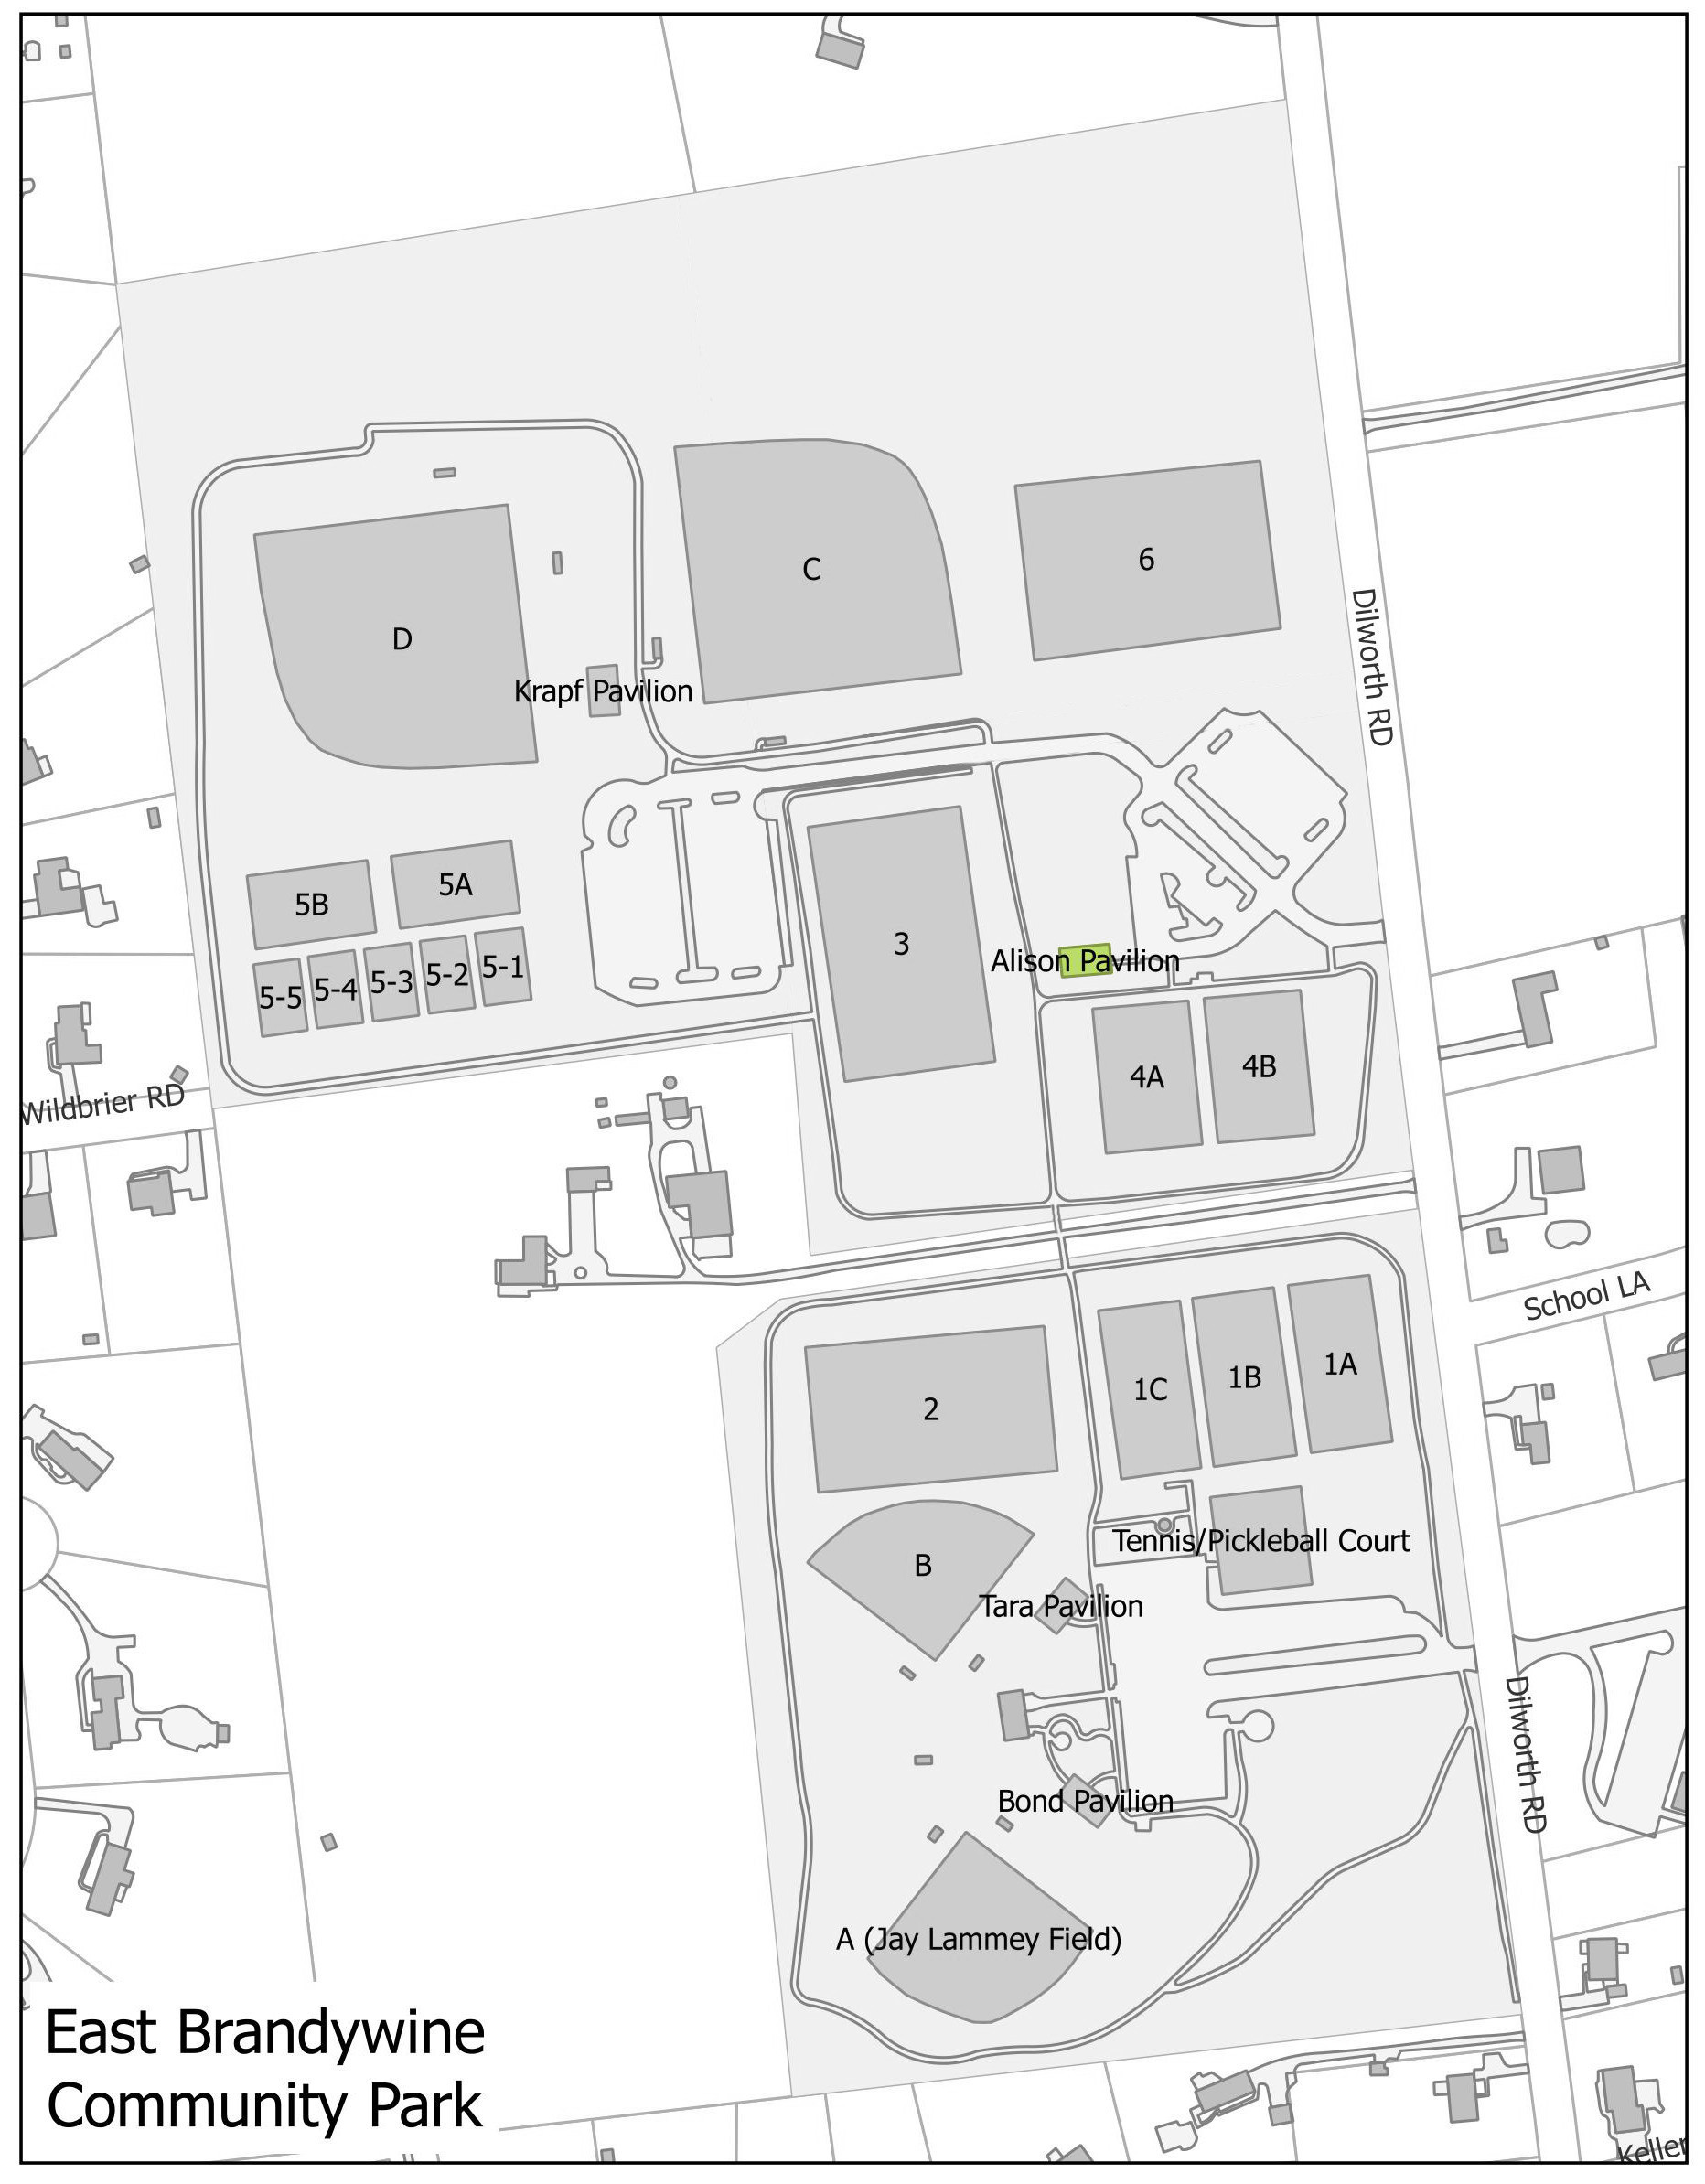 20150630 Facilities Map (EBCP-Alison)